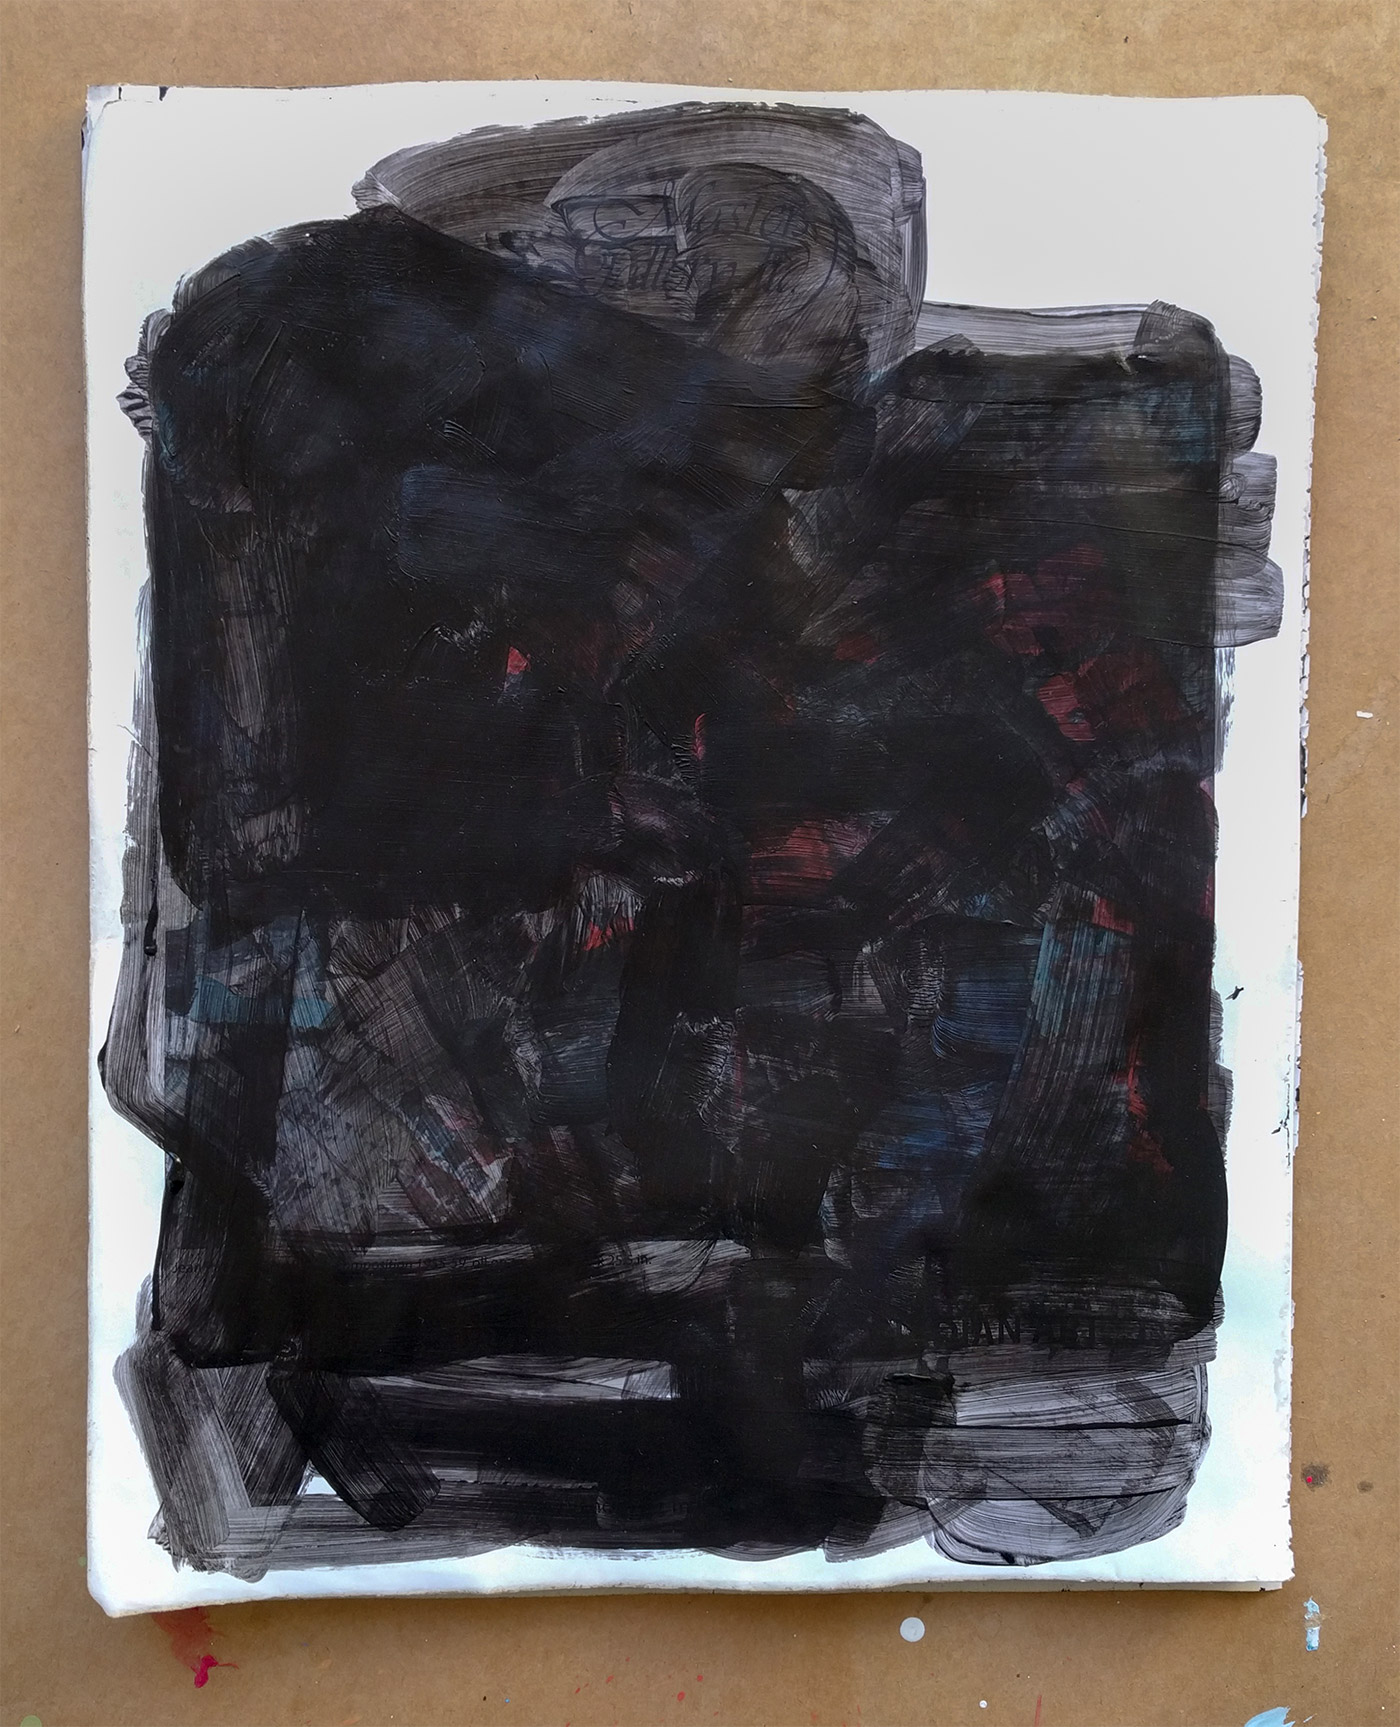 Blackout drawing - black acrylic on glossy art magazine page obscuring any images of art or people.